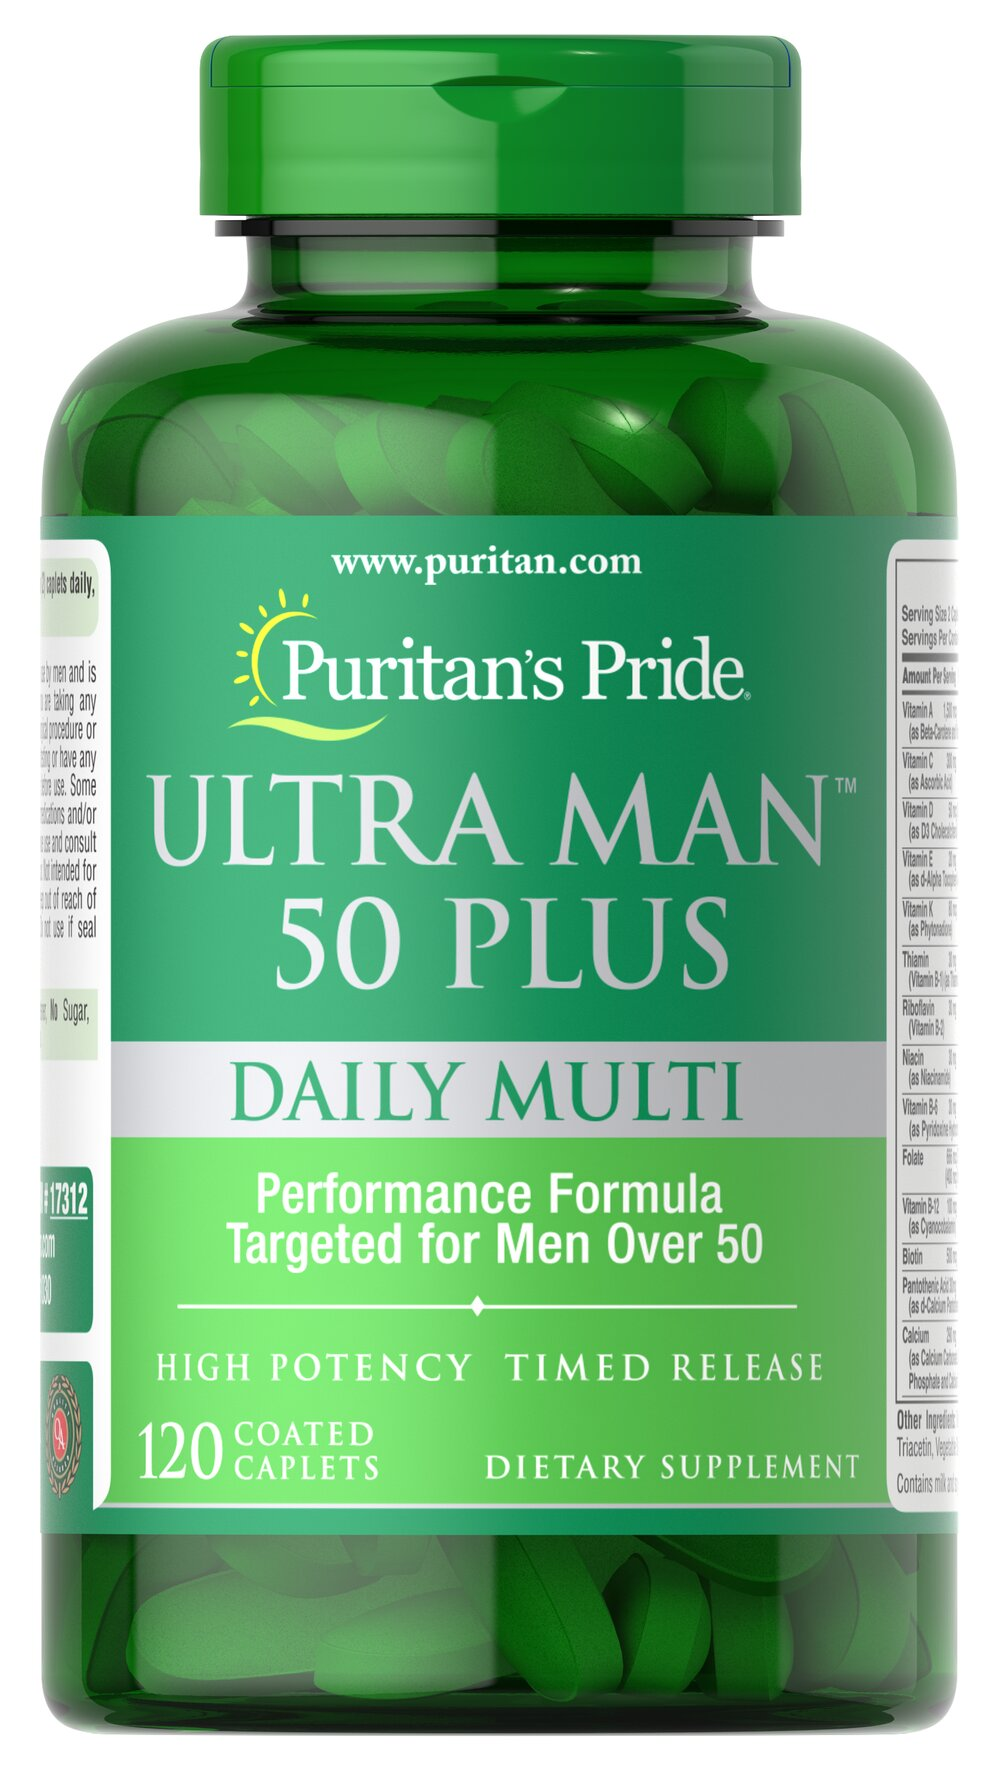 Ultra Vita Man™ 50 Plus • High performance multi with over 50 important nutrients for men's health**<br />• Created especially for men over 50<br />• Just two coated caplets a day<br />• Helps improve memory, especially occasional mild memory problems associated with aging**<br />• Features Zinc, an important mineral that contributes to normal semen production and sexual health** 120 Caplets  $12.79